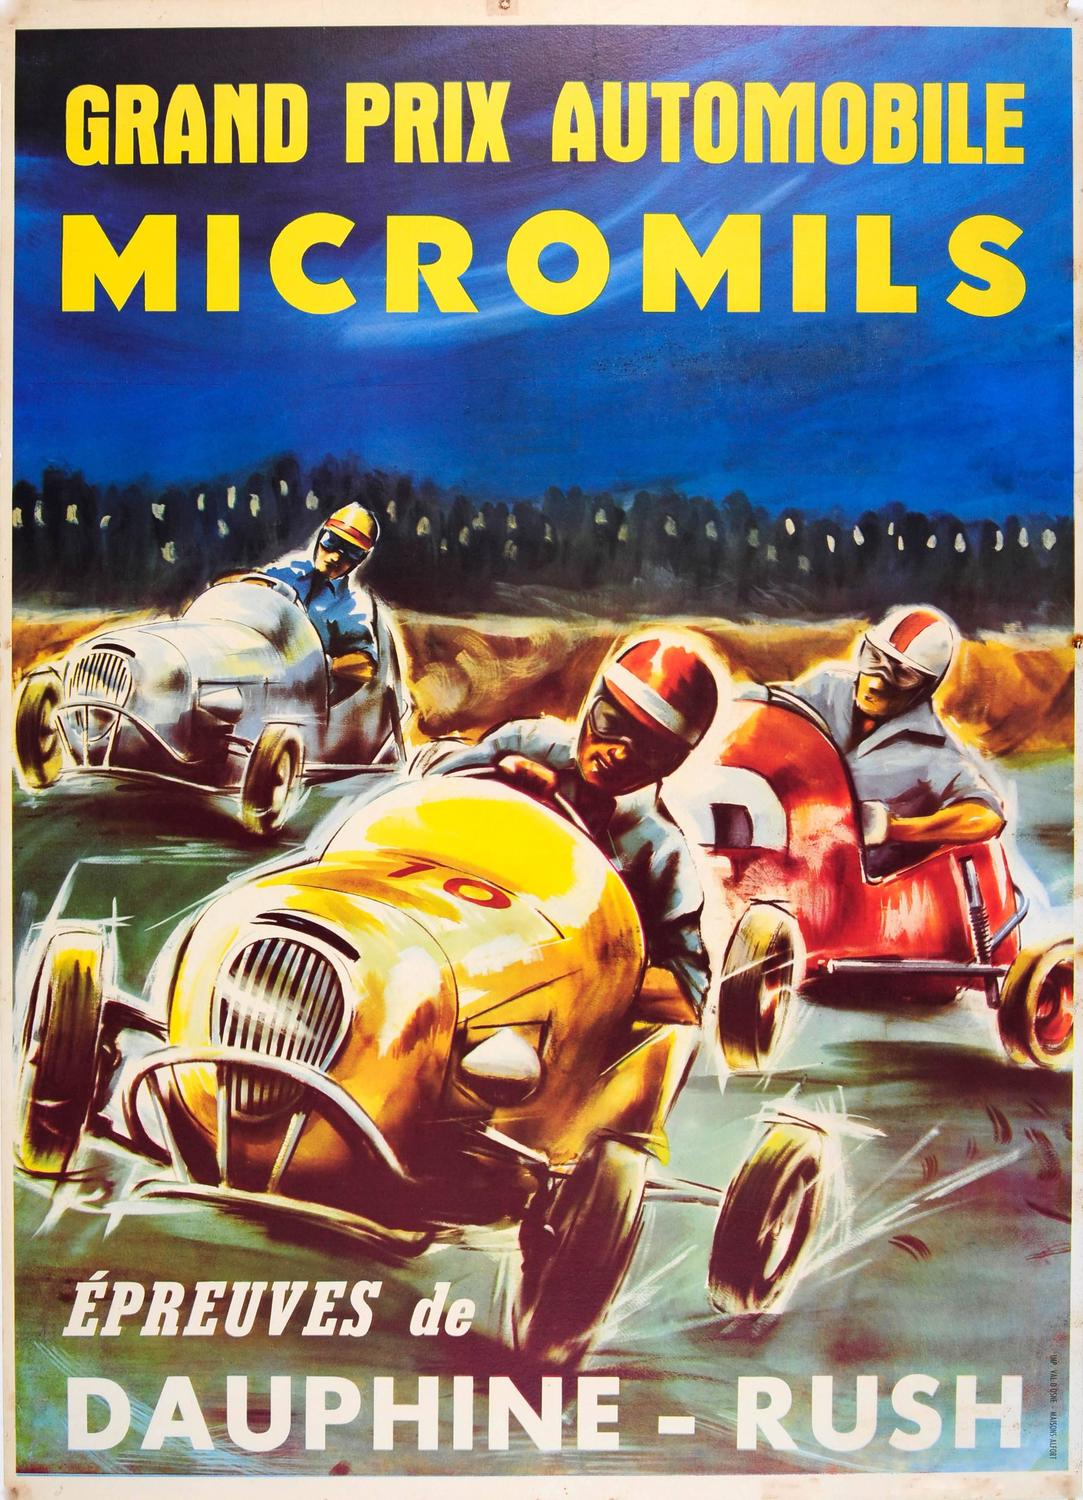 Original Vintage Sports Car Racing Poster For Grand Prix Automobile  Micromils At 1stdibs